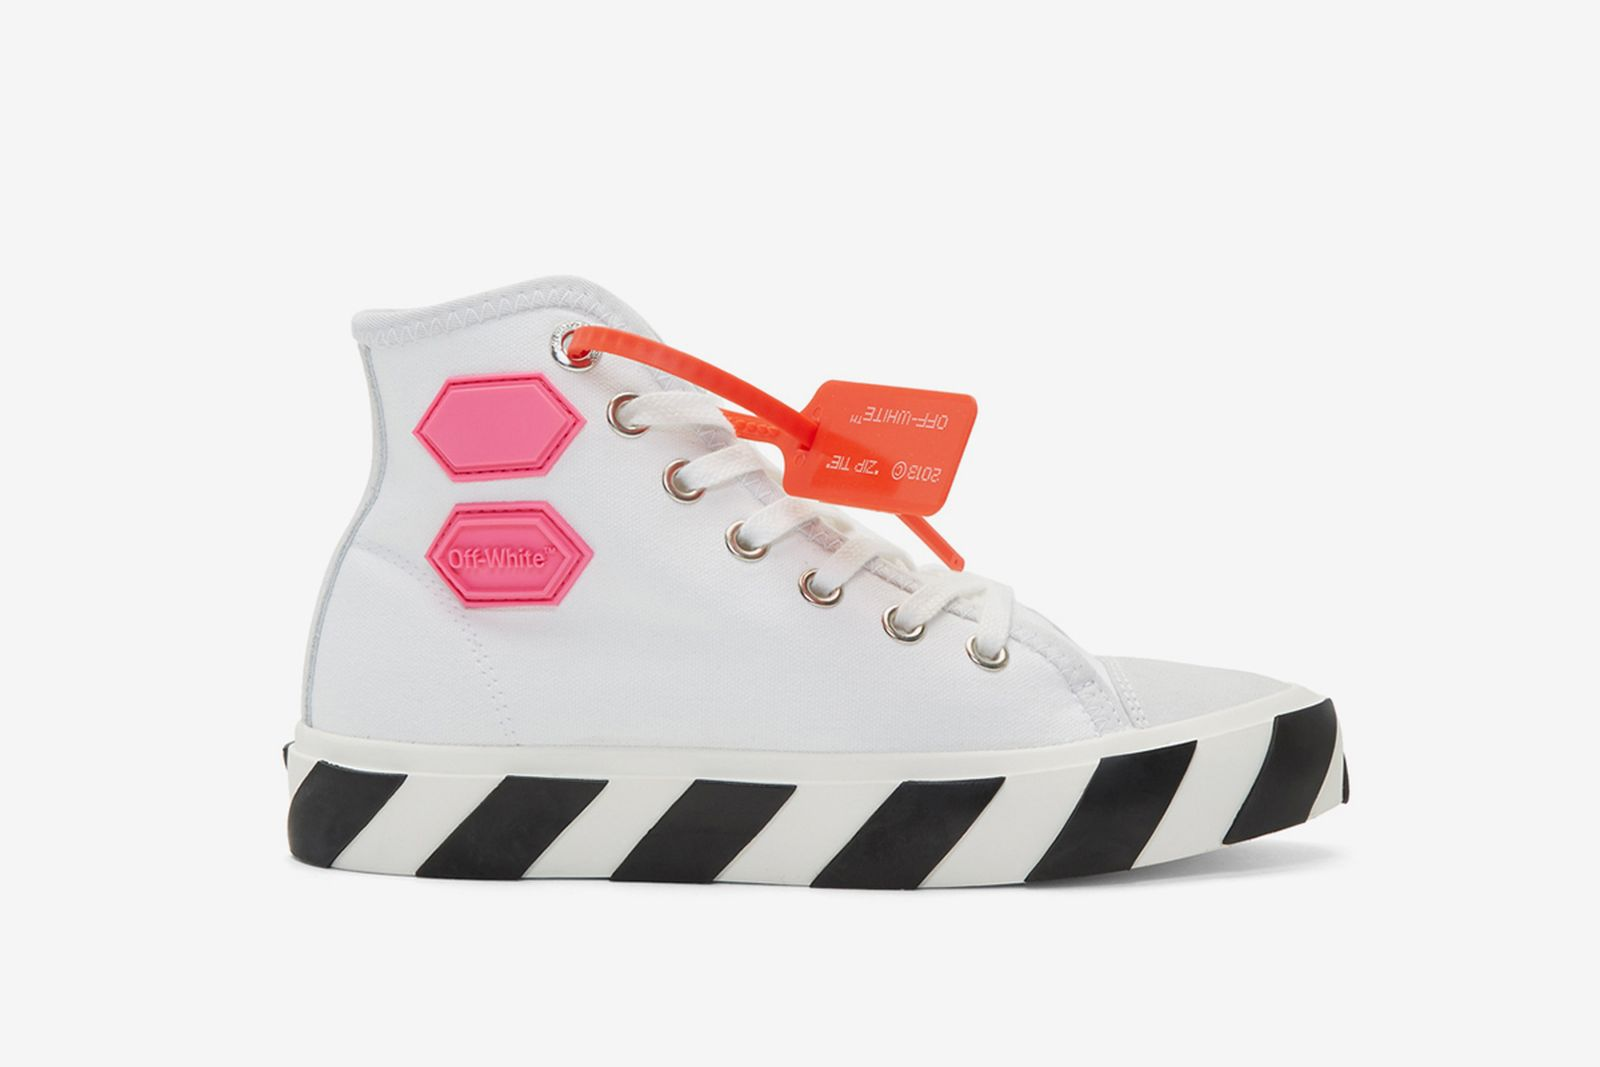 best canvas sneakers 000 Converse Nike OFF-WHITE c/o Virgil Abloh